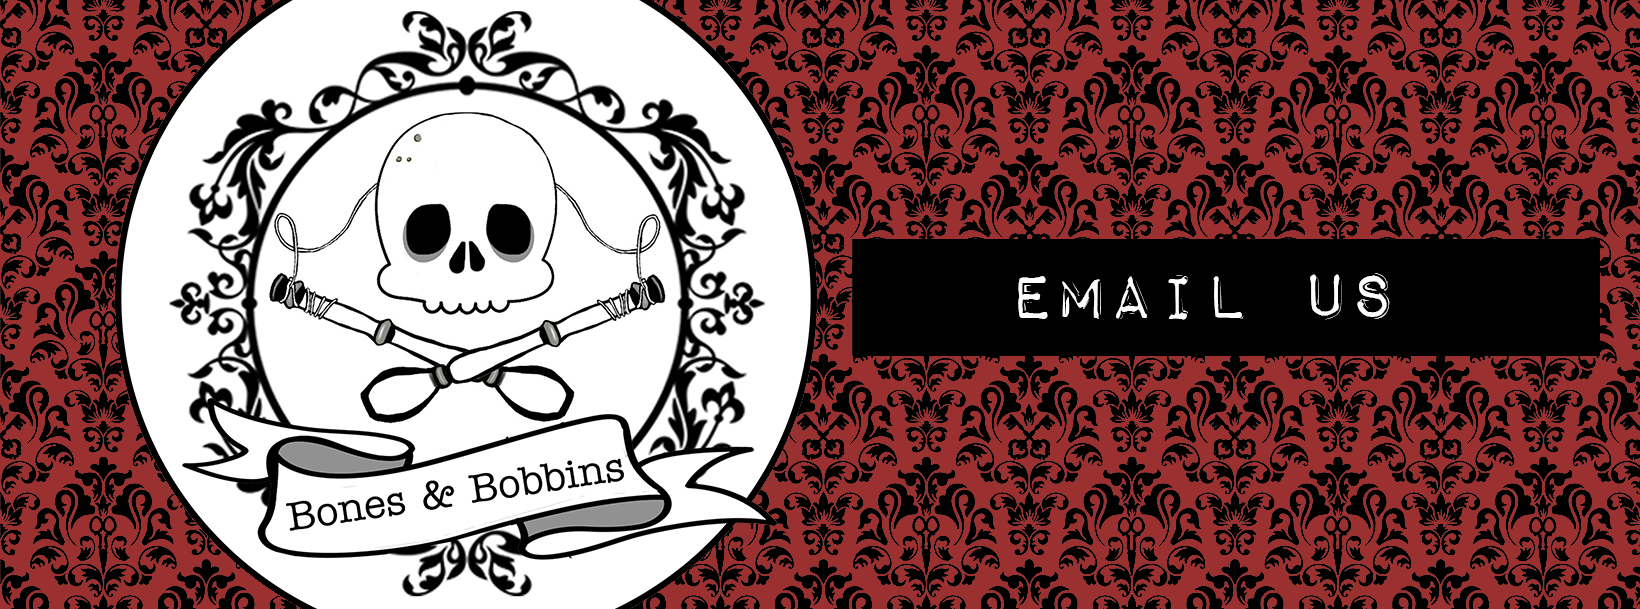 Email the Bones & Bobbins Podcast